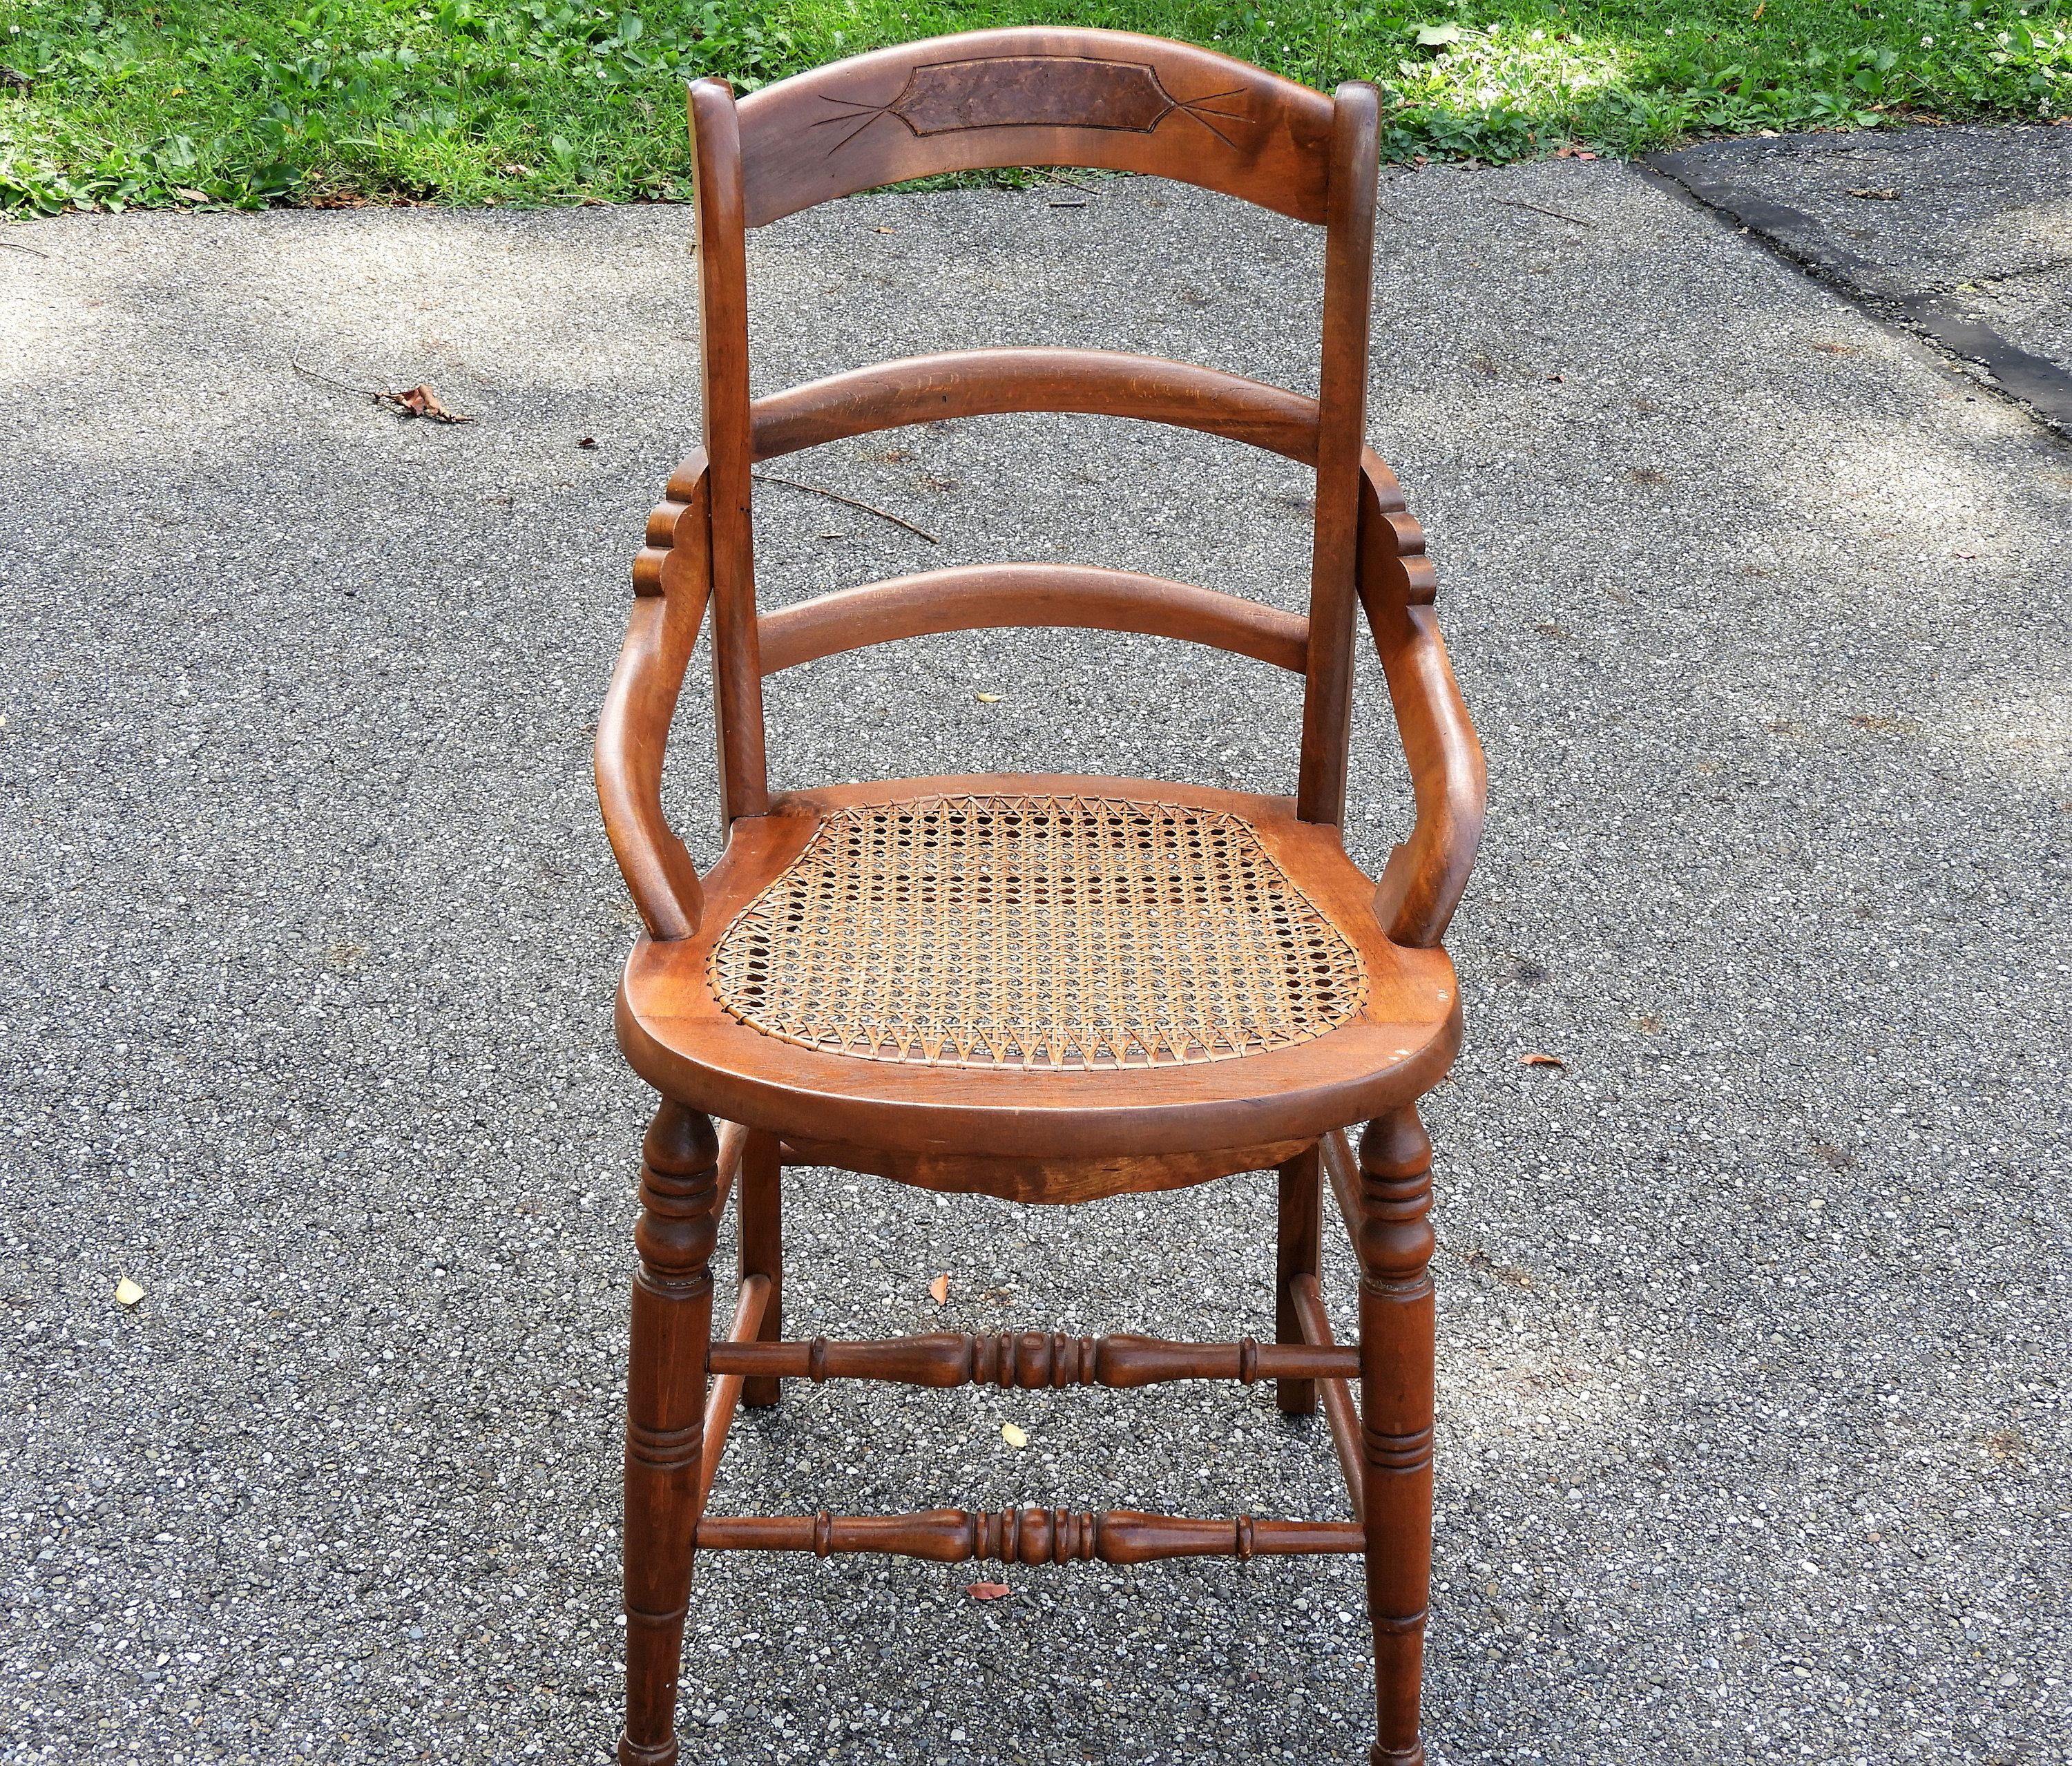 Antique Wooden Chair Burl Wood Inset Woven Cane Mahogany Etsy Antique Wooden Chairs Wooden Chair Burled Wood